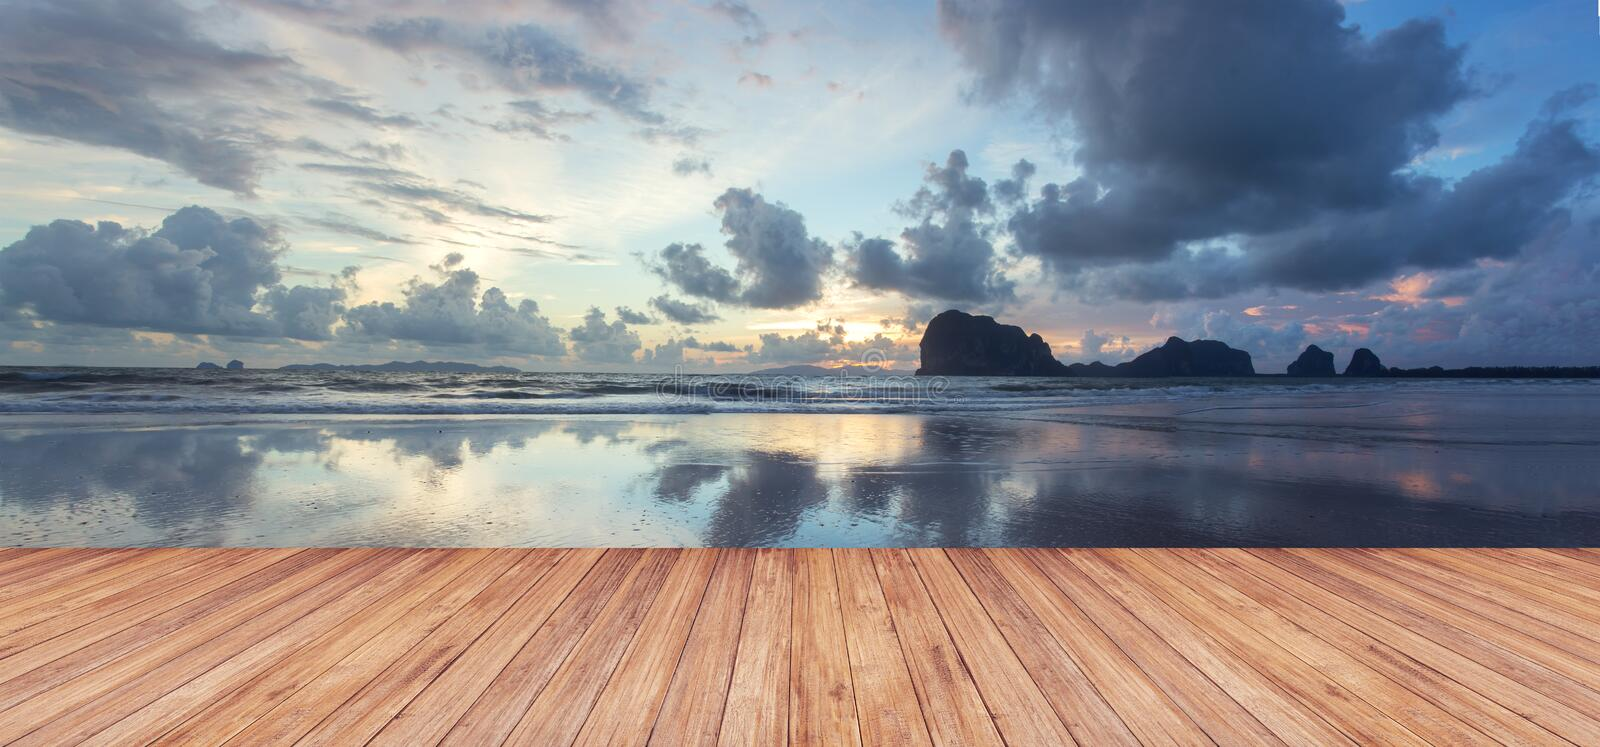 Perspective of wood terrace against beautiful seascape at sunset stock photography